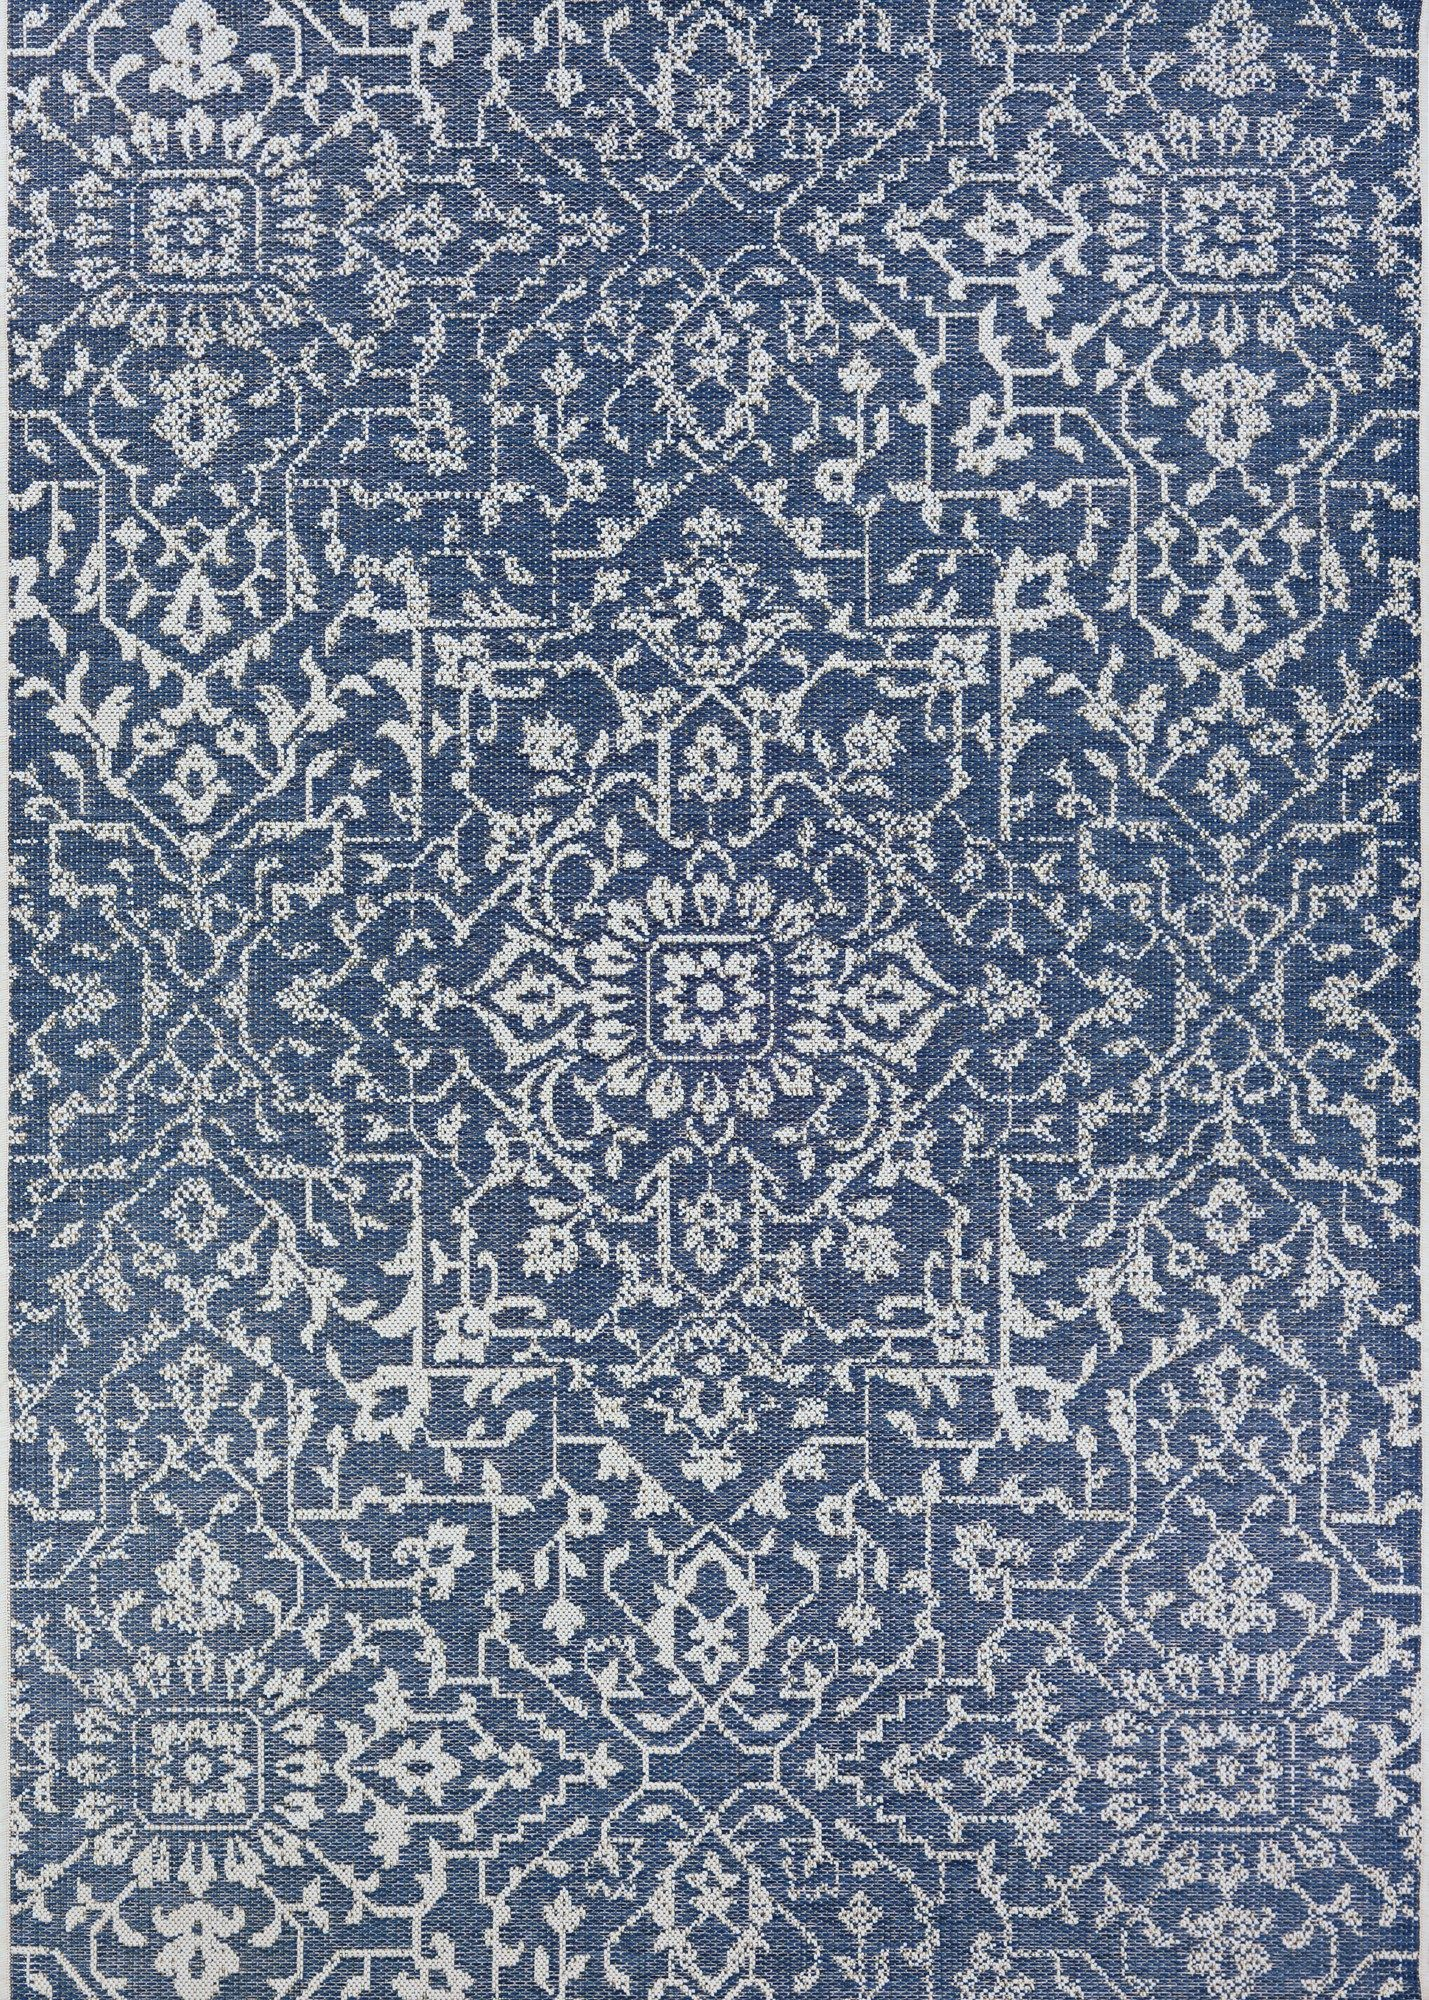 Dalmally Navy 53 X 76 Indoor Outdoor Rug 109 99 76l X 53w Find